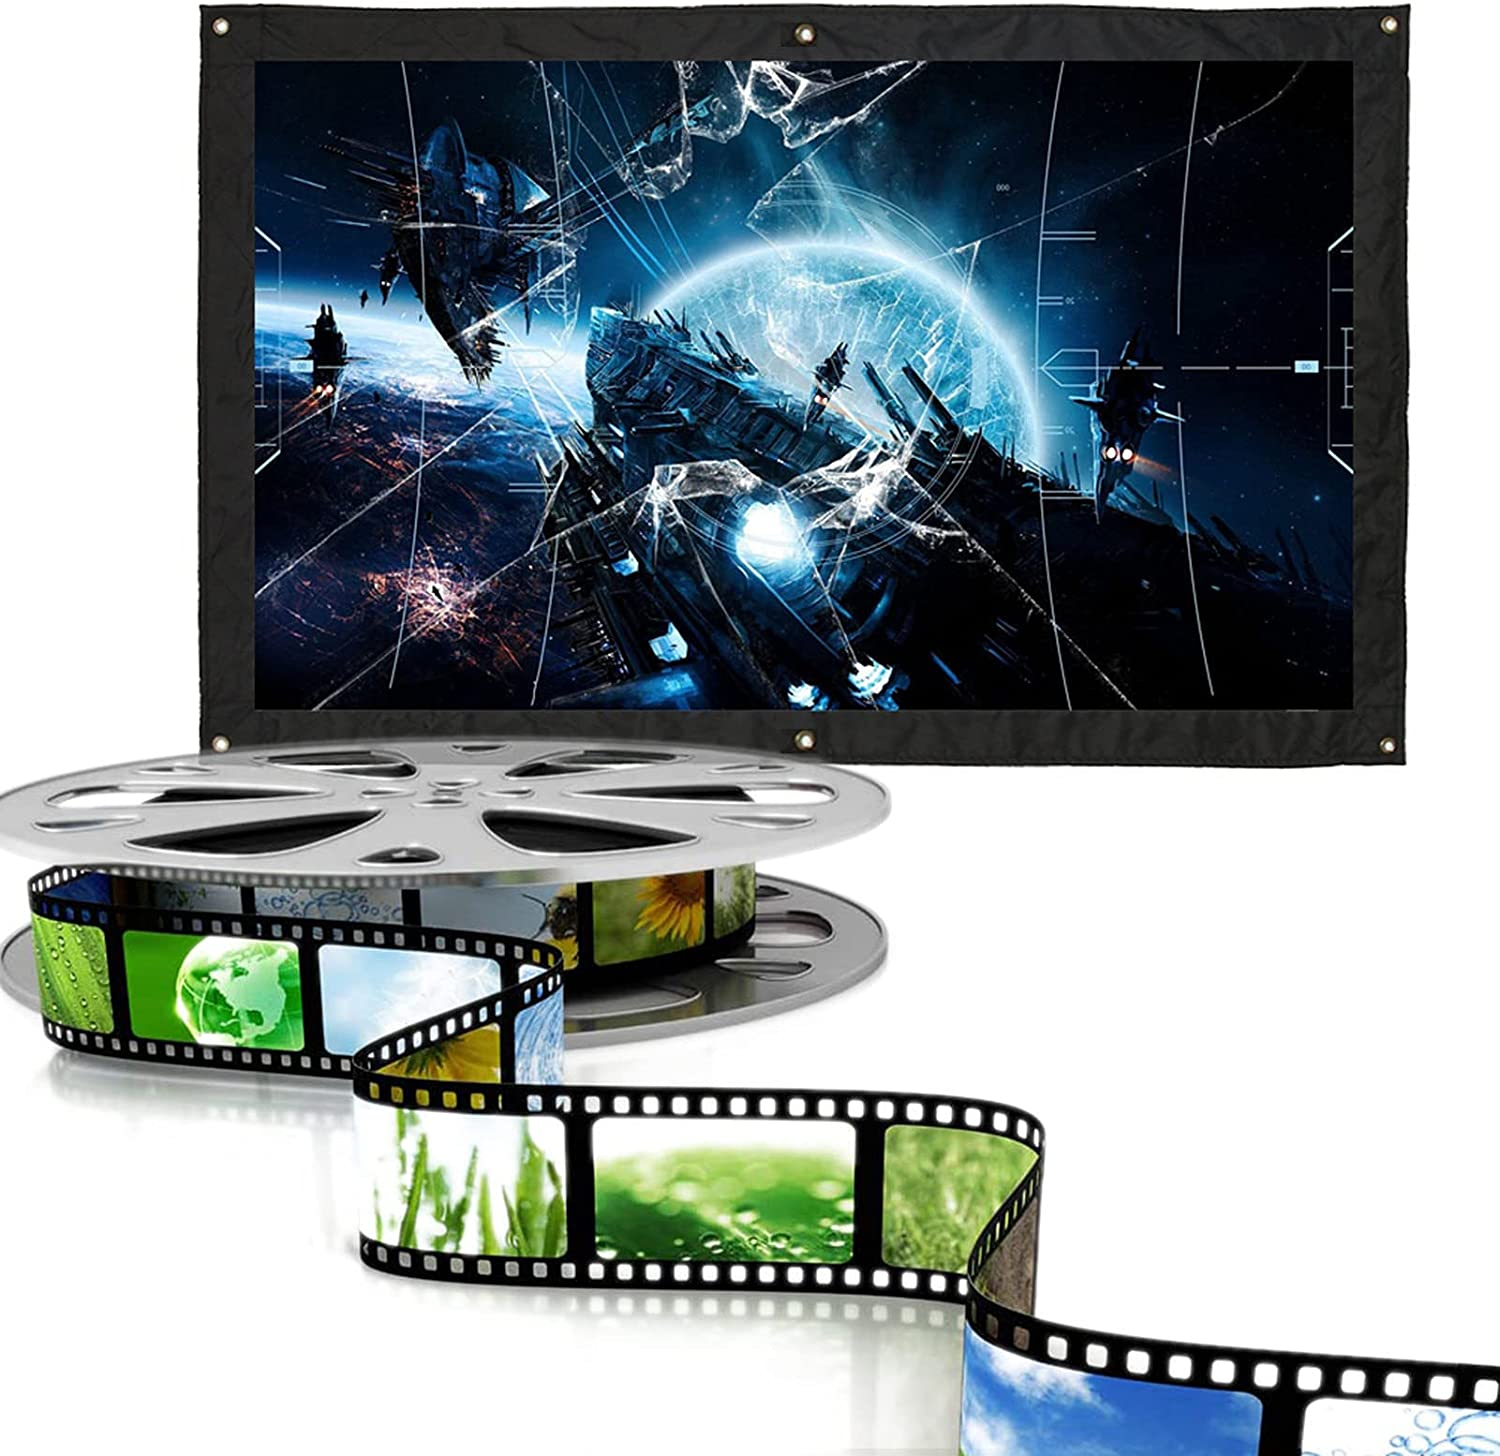 Gaeirt Portable Projection Screen, Folding Projector Screen Outdoor Movie Screen for Home Patio Balcony(60 inches)